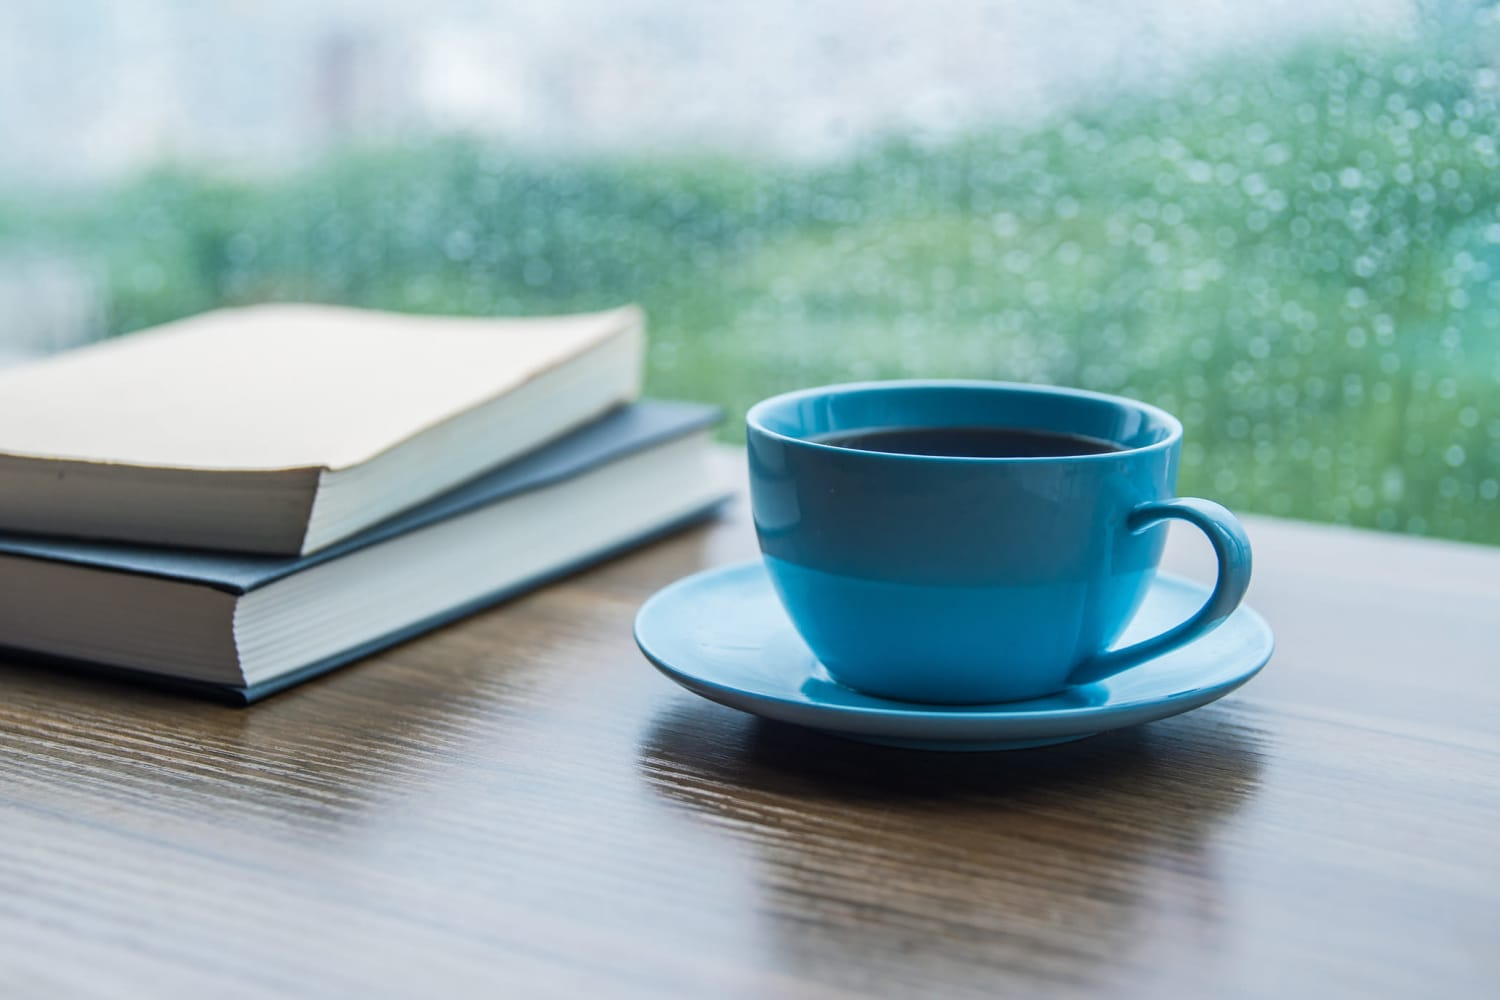 A cup of coffee and books on a table near a window at Farmington Square Tualatin in Tualatin, Oregon